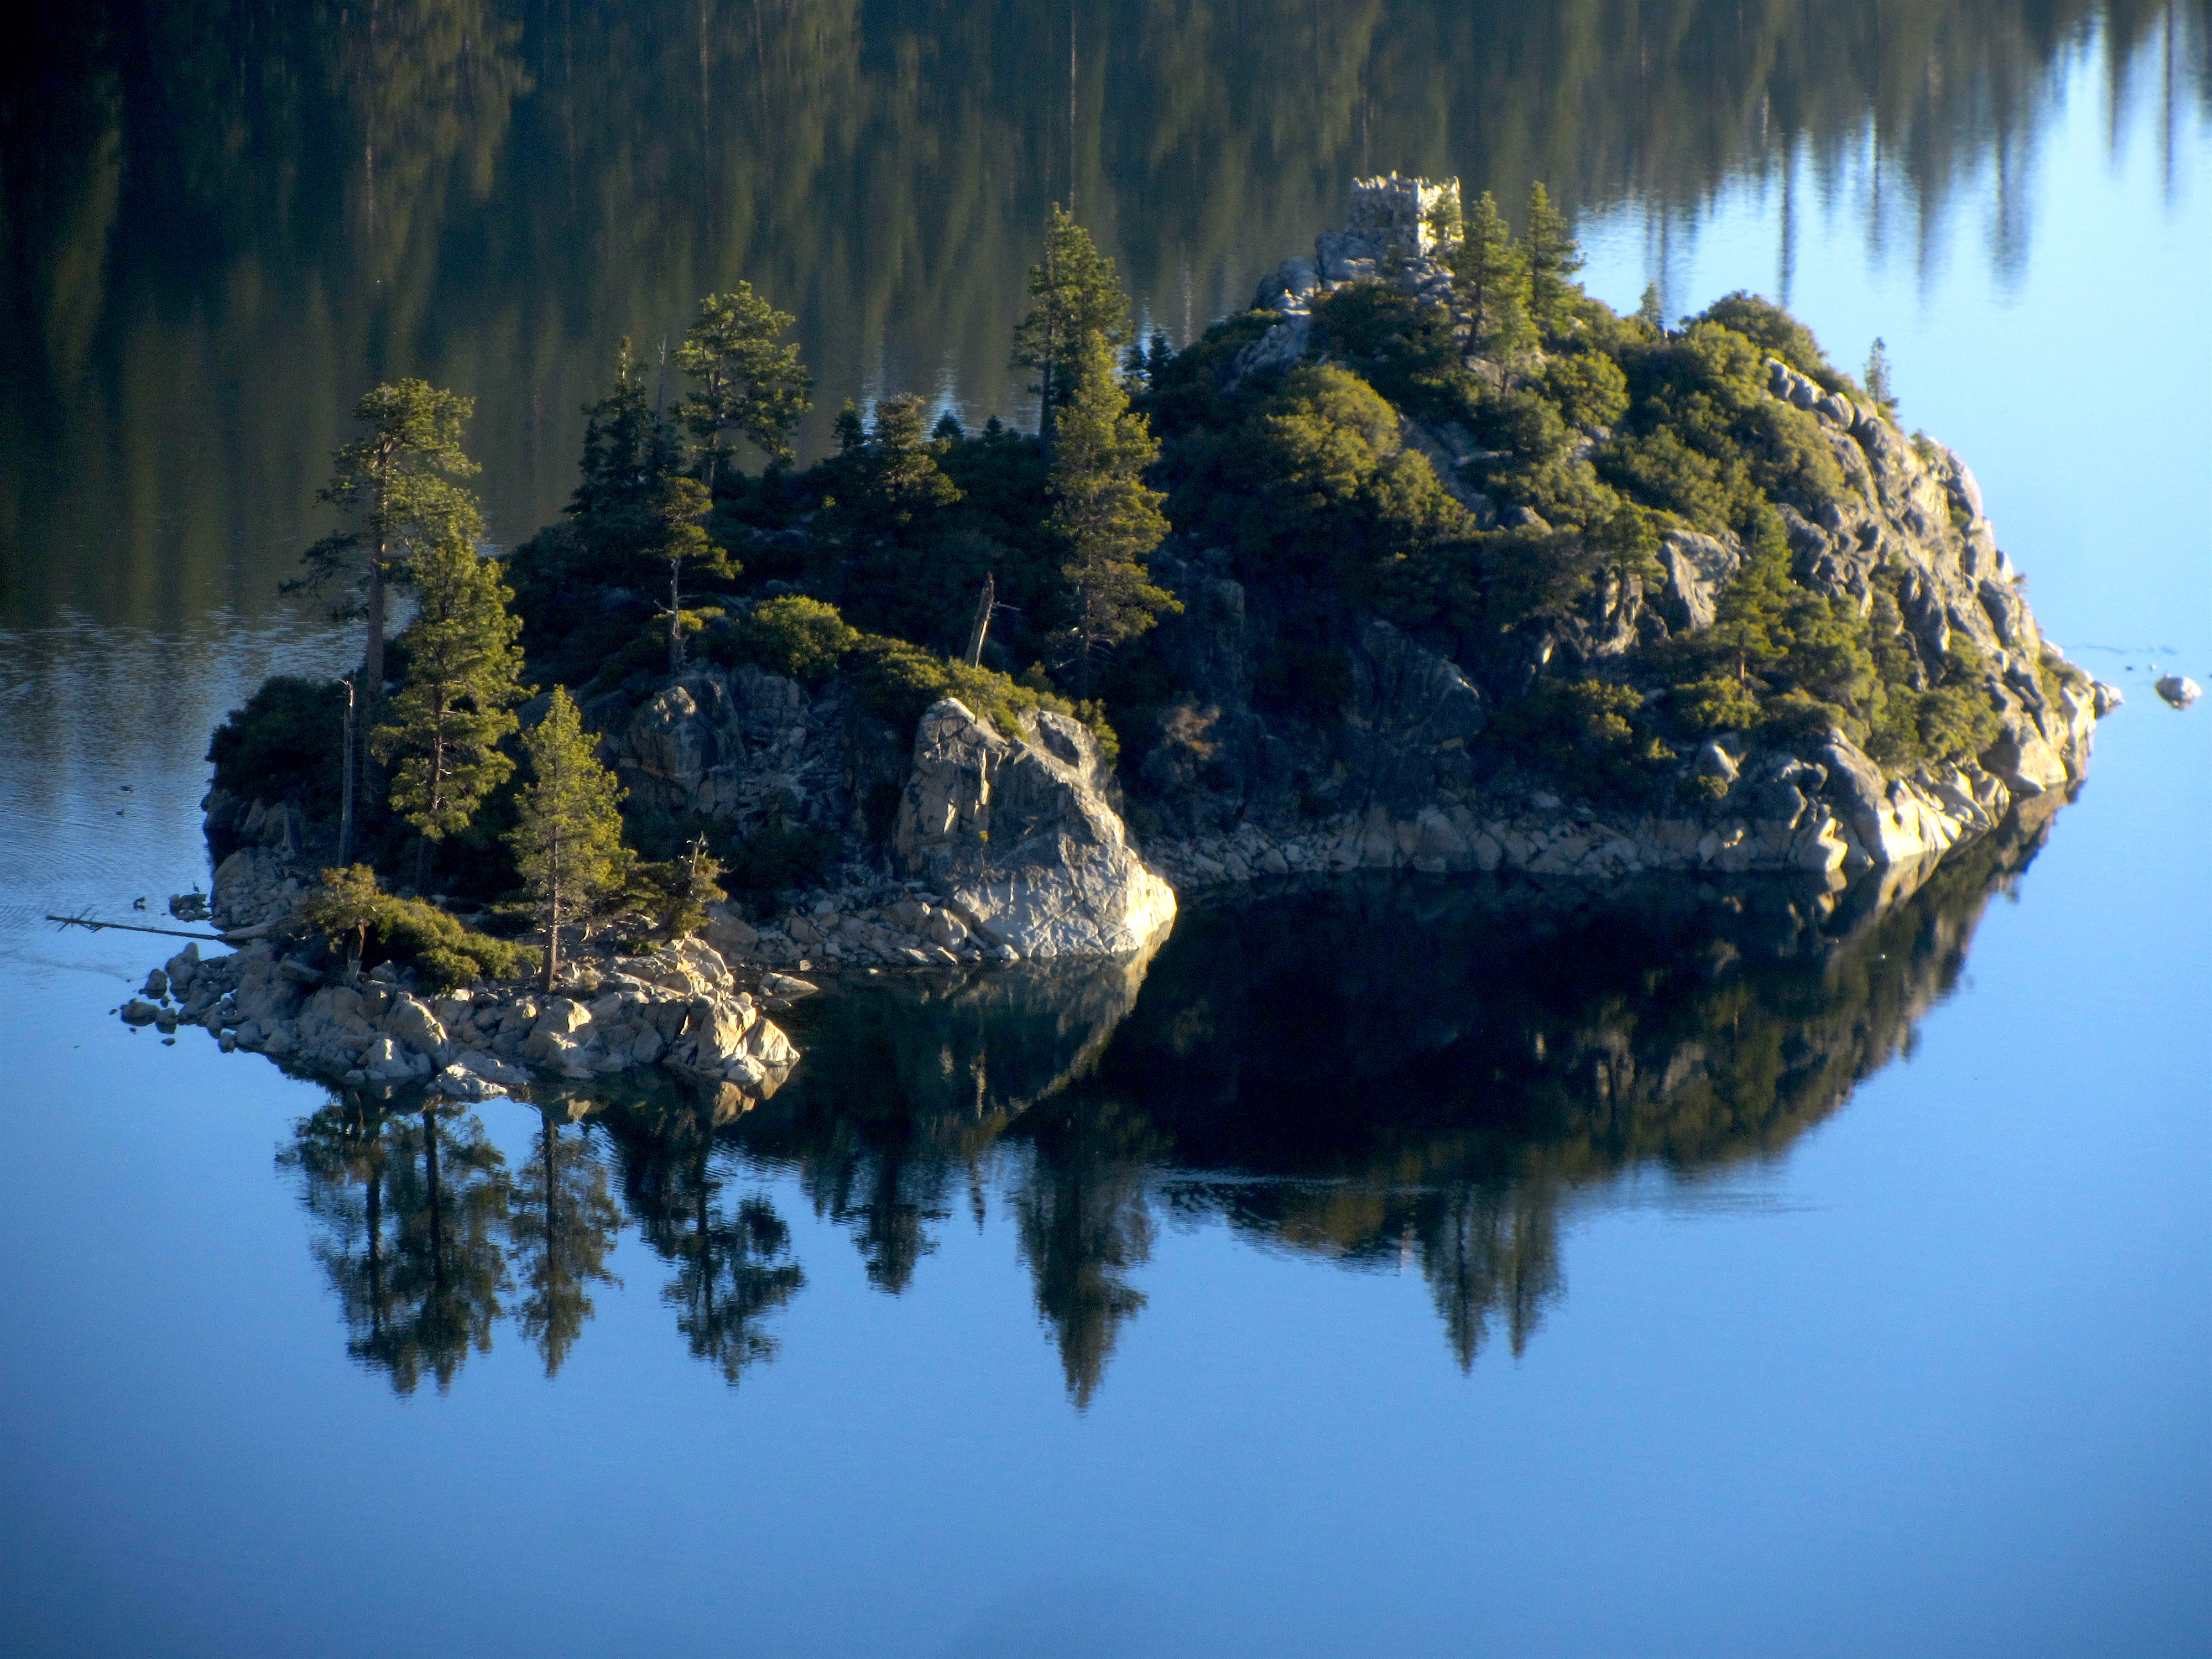 Fannette Island, Lake Tahoe's only Isle. Today. photo: miles clark/snowbrains